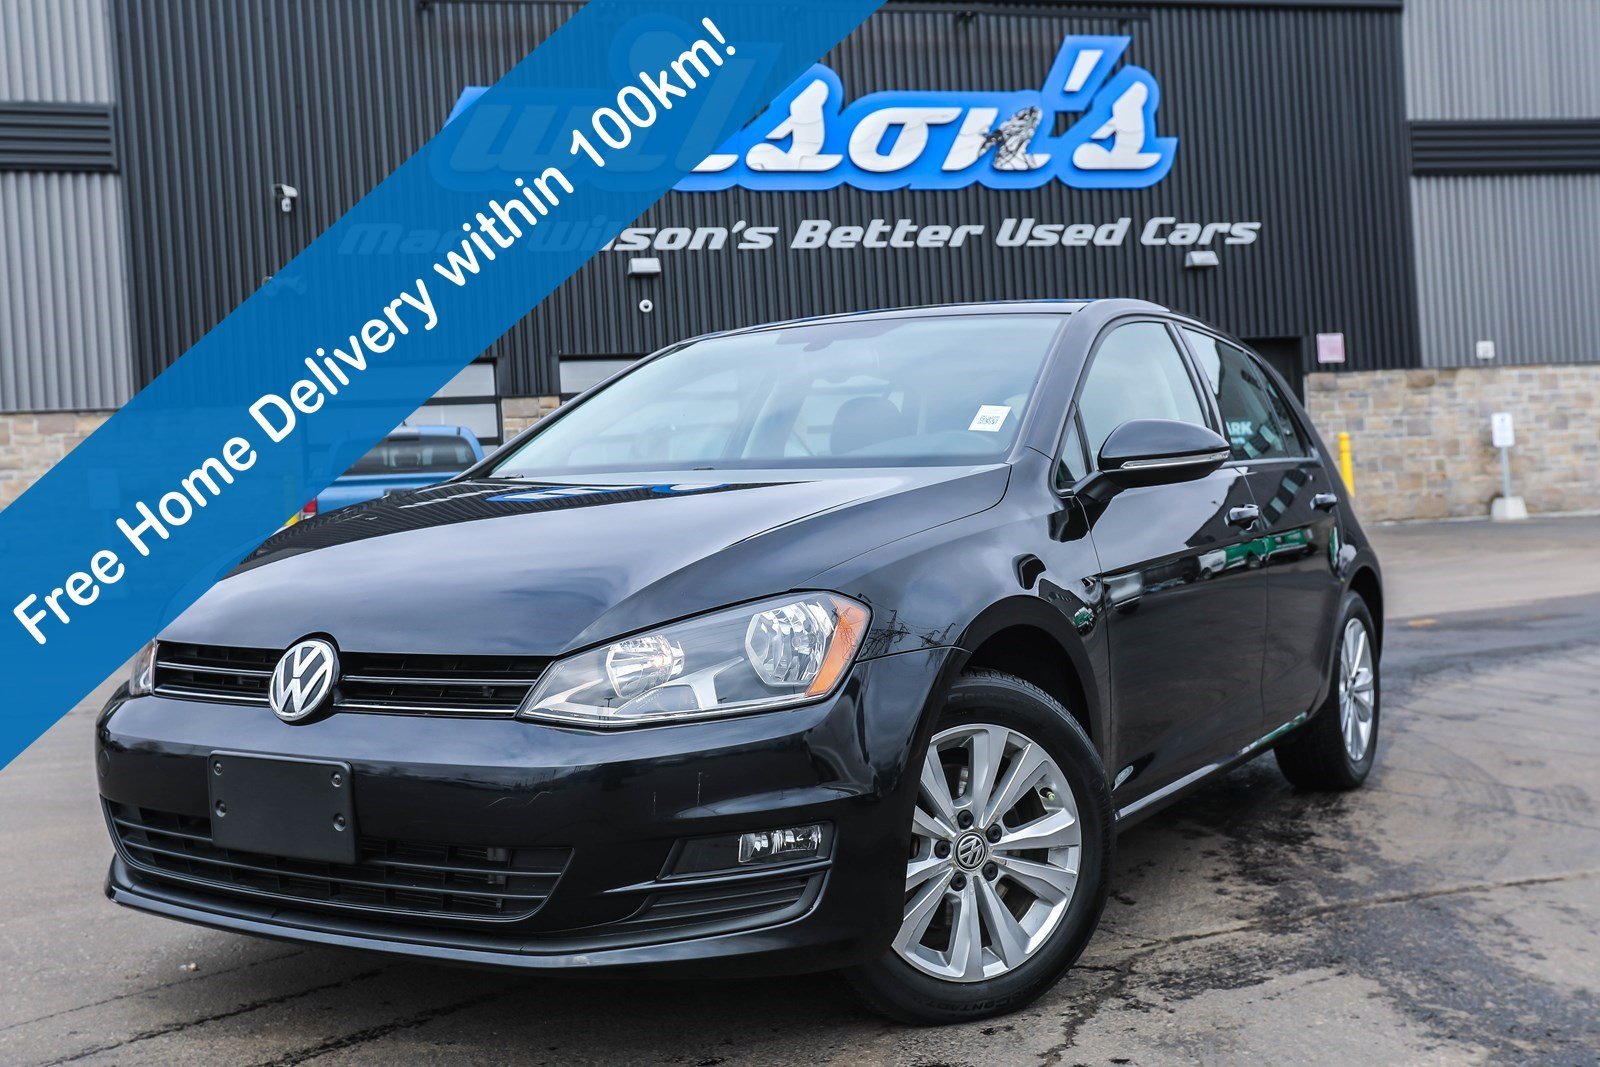 Certified Pre-Owned 2016 Volkswagen Golf Comfortline, Leather, Navigation, Sunroof, New Tires, Heated Seats, Rear Camera, Bluetooth and more!